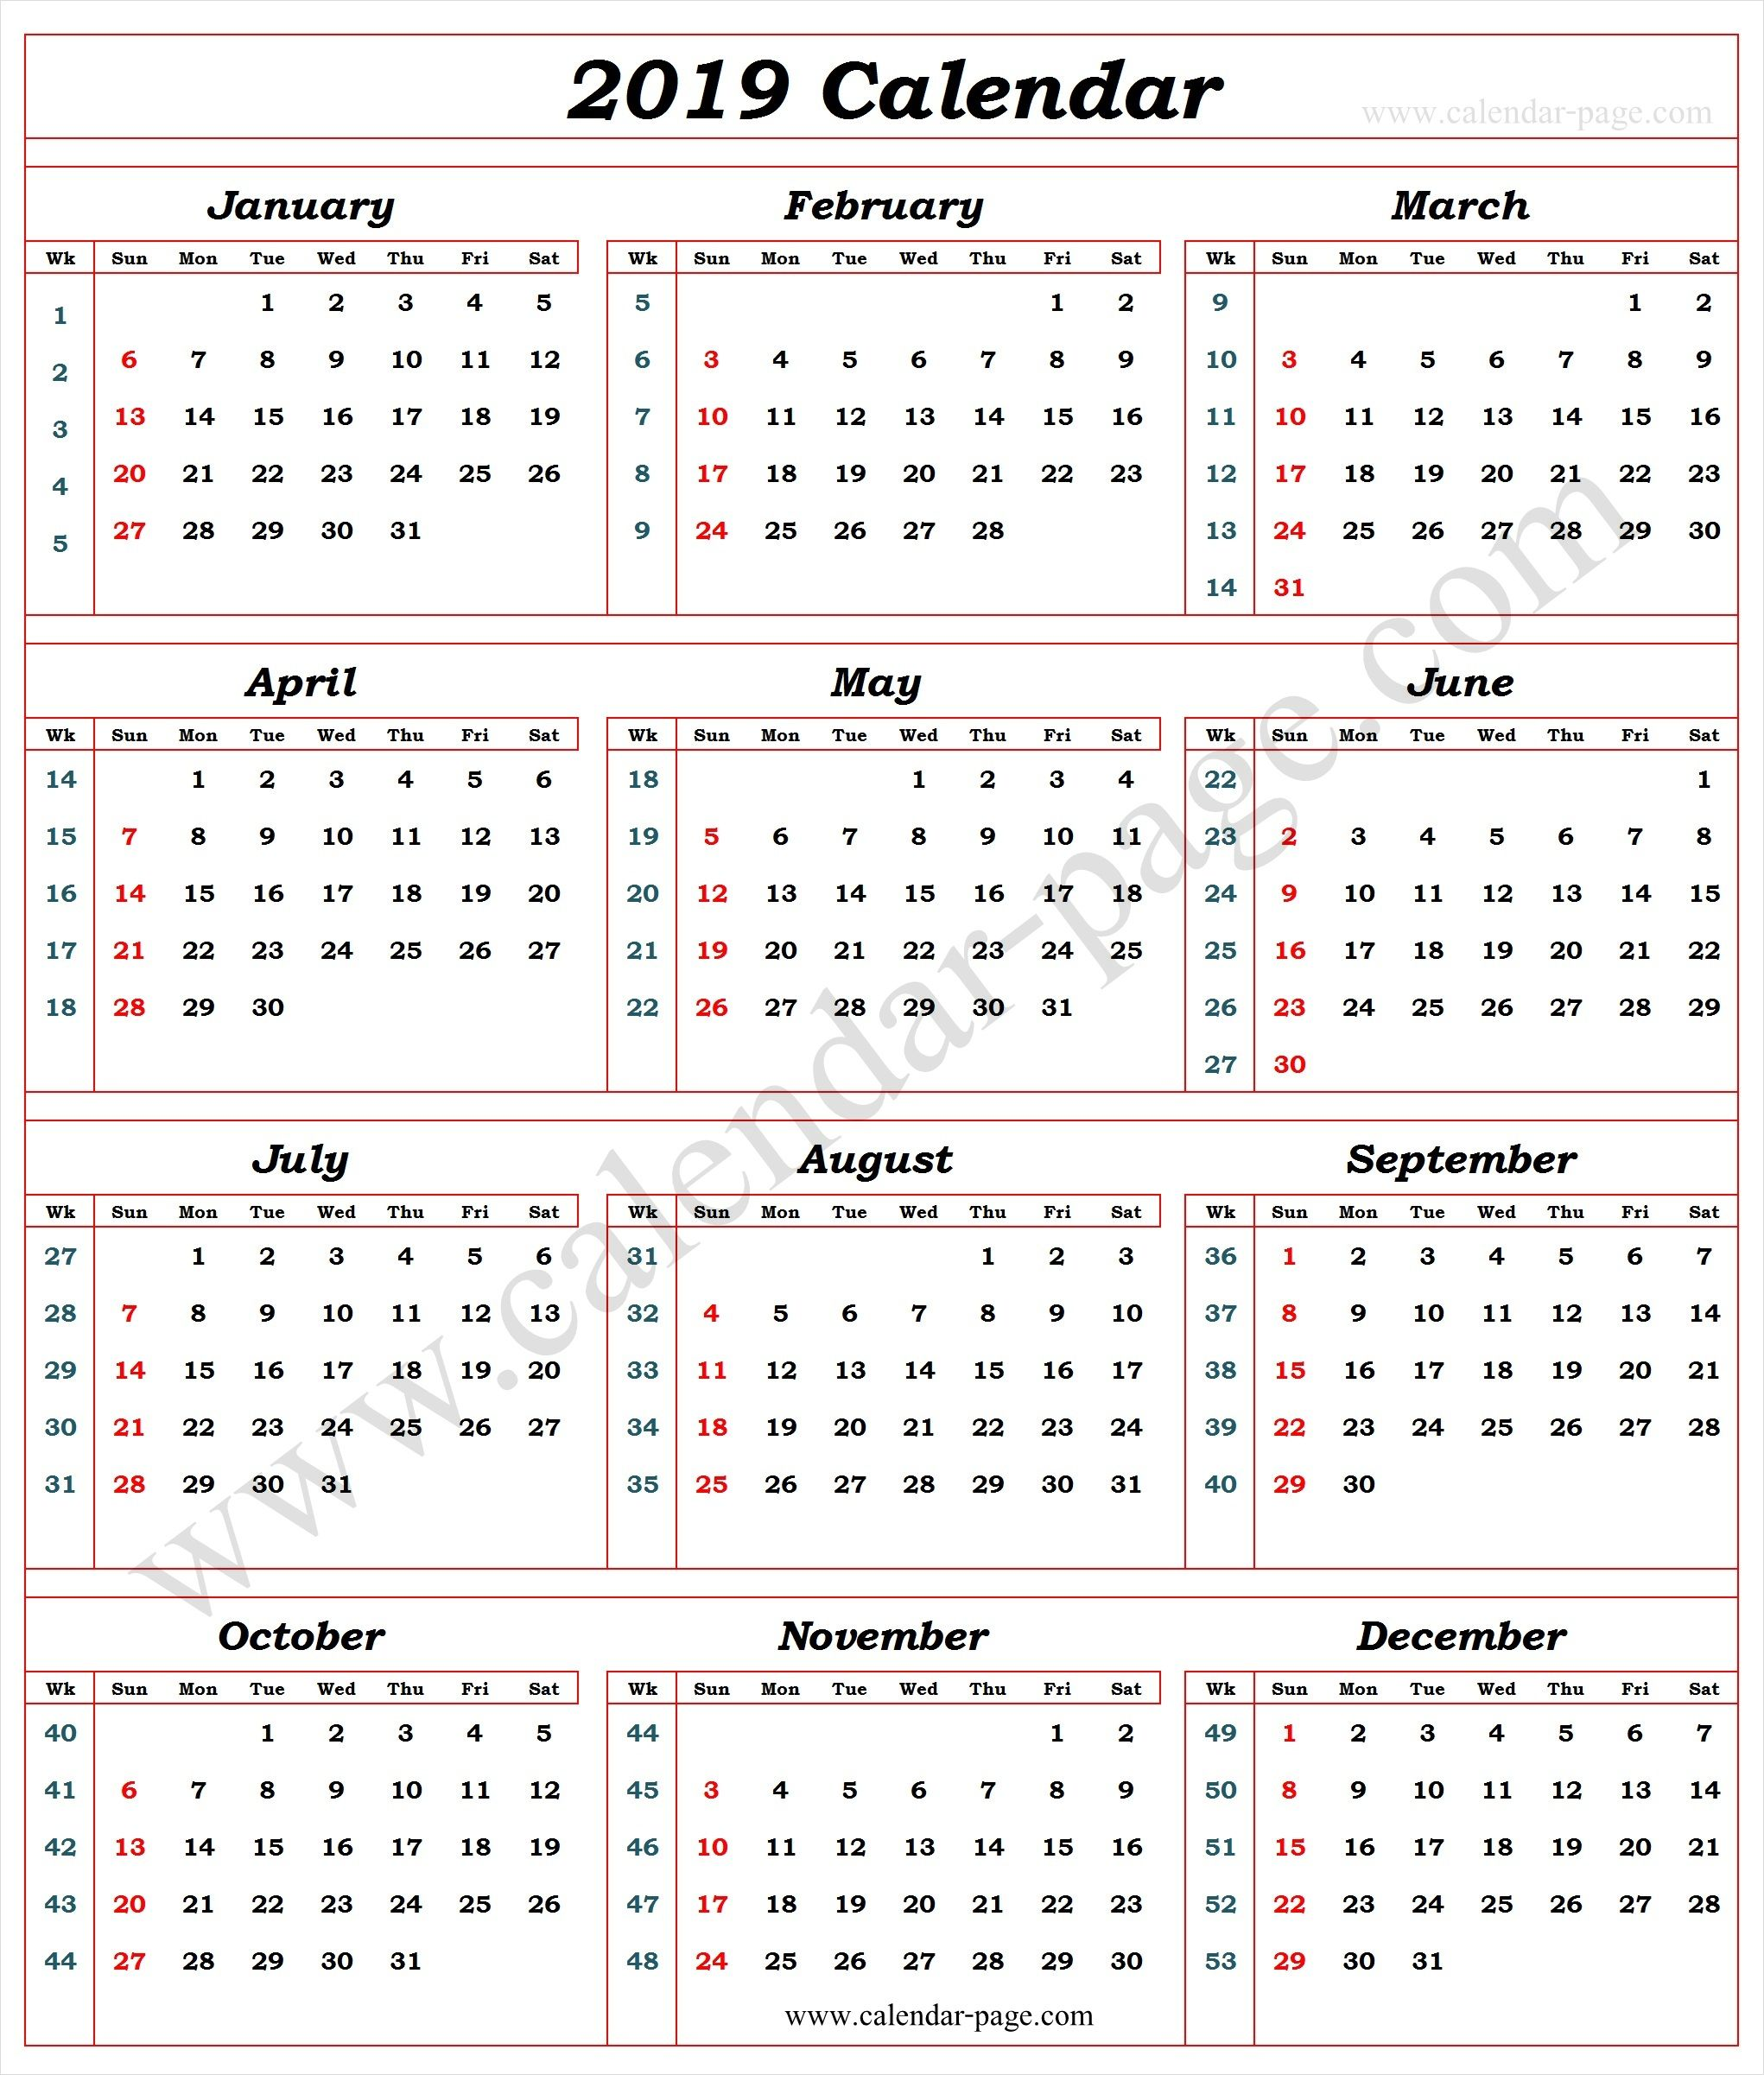 calendar 2019 with week numbers